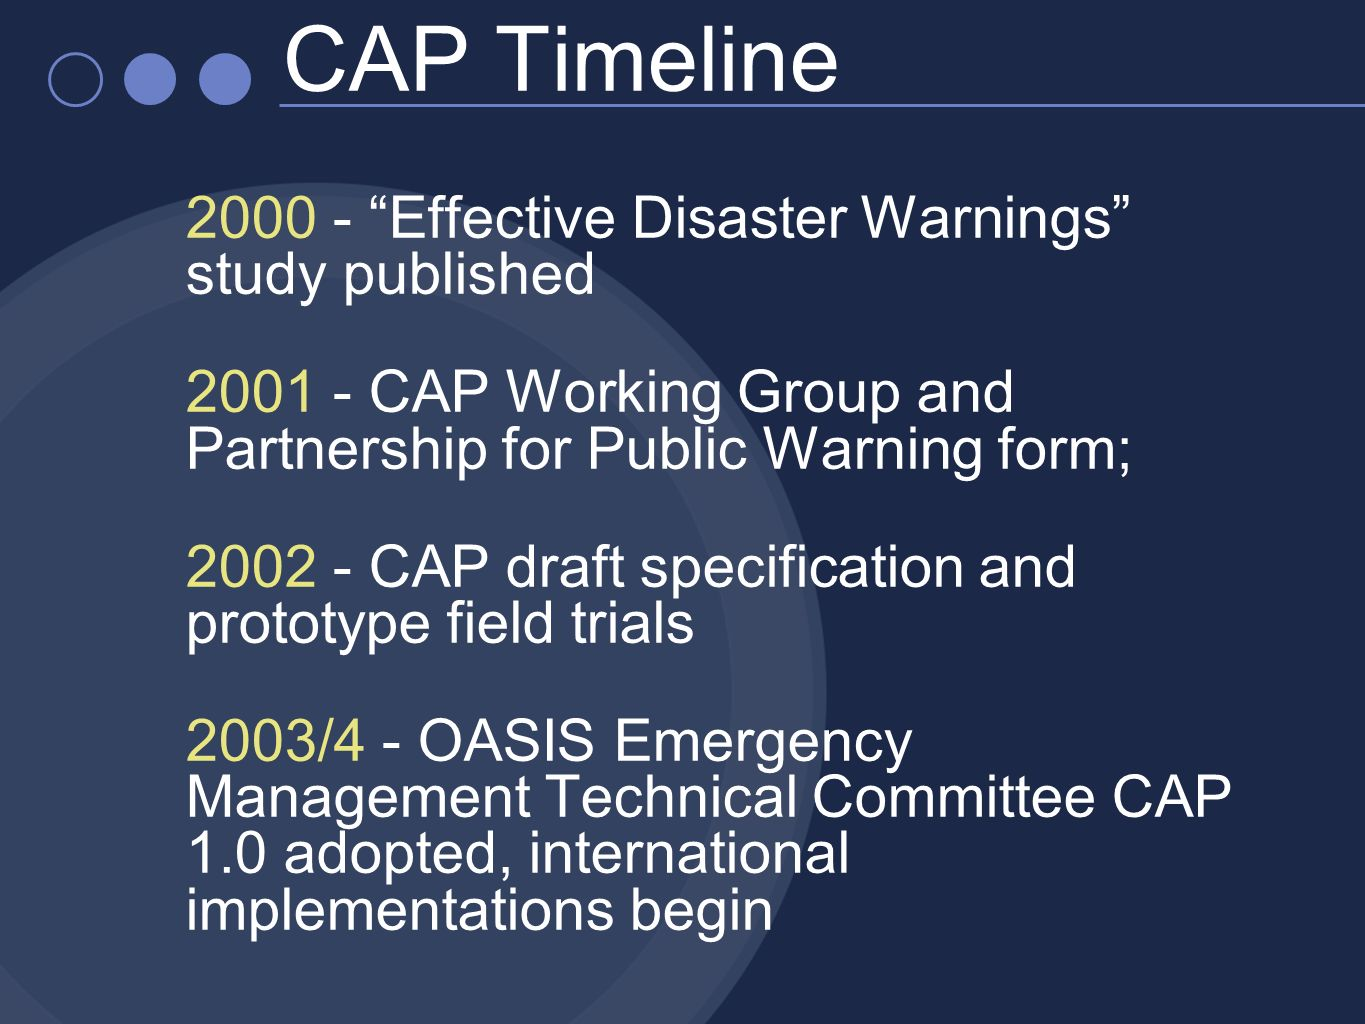 2000 - Effective Disaster Warnings study published 2001 - CAP Working Group and Partnership for Public Warning form; 2002 - CAP draft specification and prototype field trials 2003/4 - OASIS Emergency Management Technical Committee CAP 1.0 adopted, international implementations begin CAP Timeline